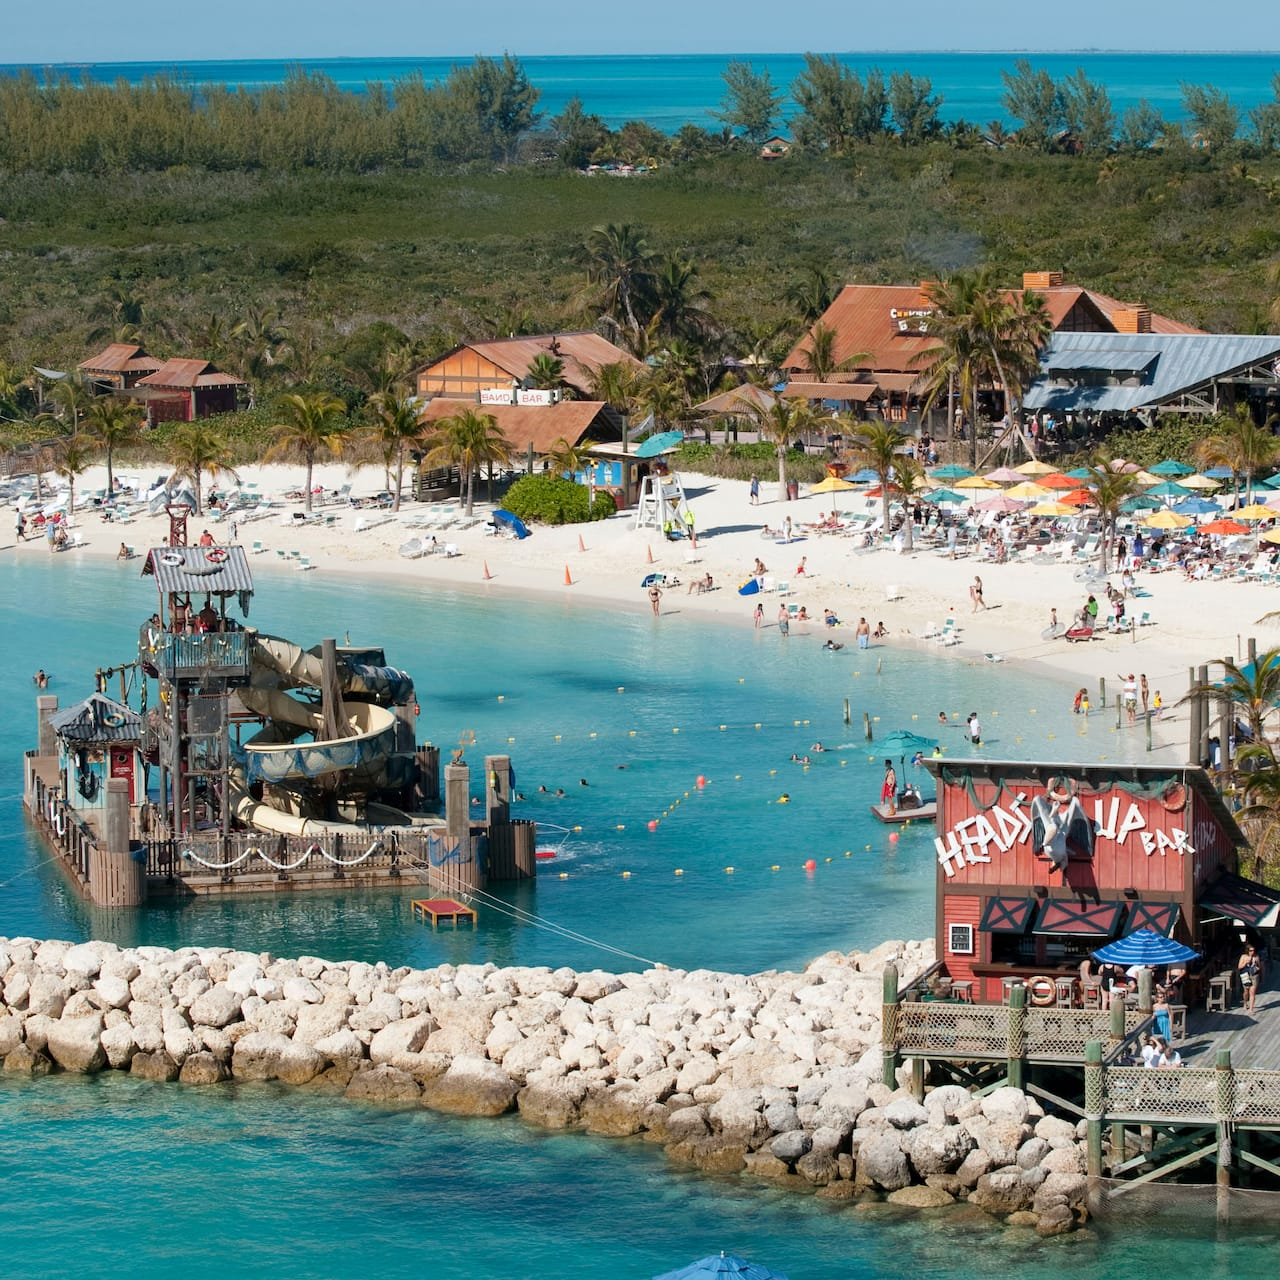 The cove, beach area, Heads Up Bar and several island-style buildings on Castaway Cay